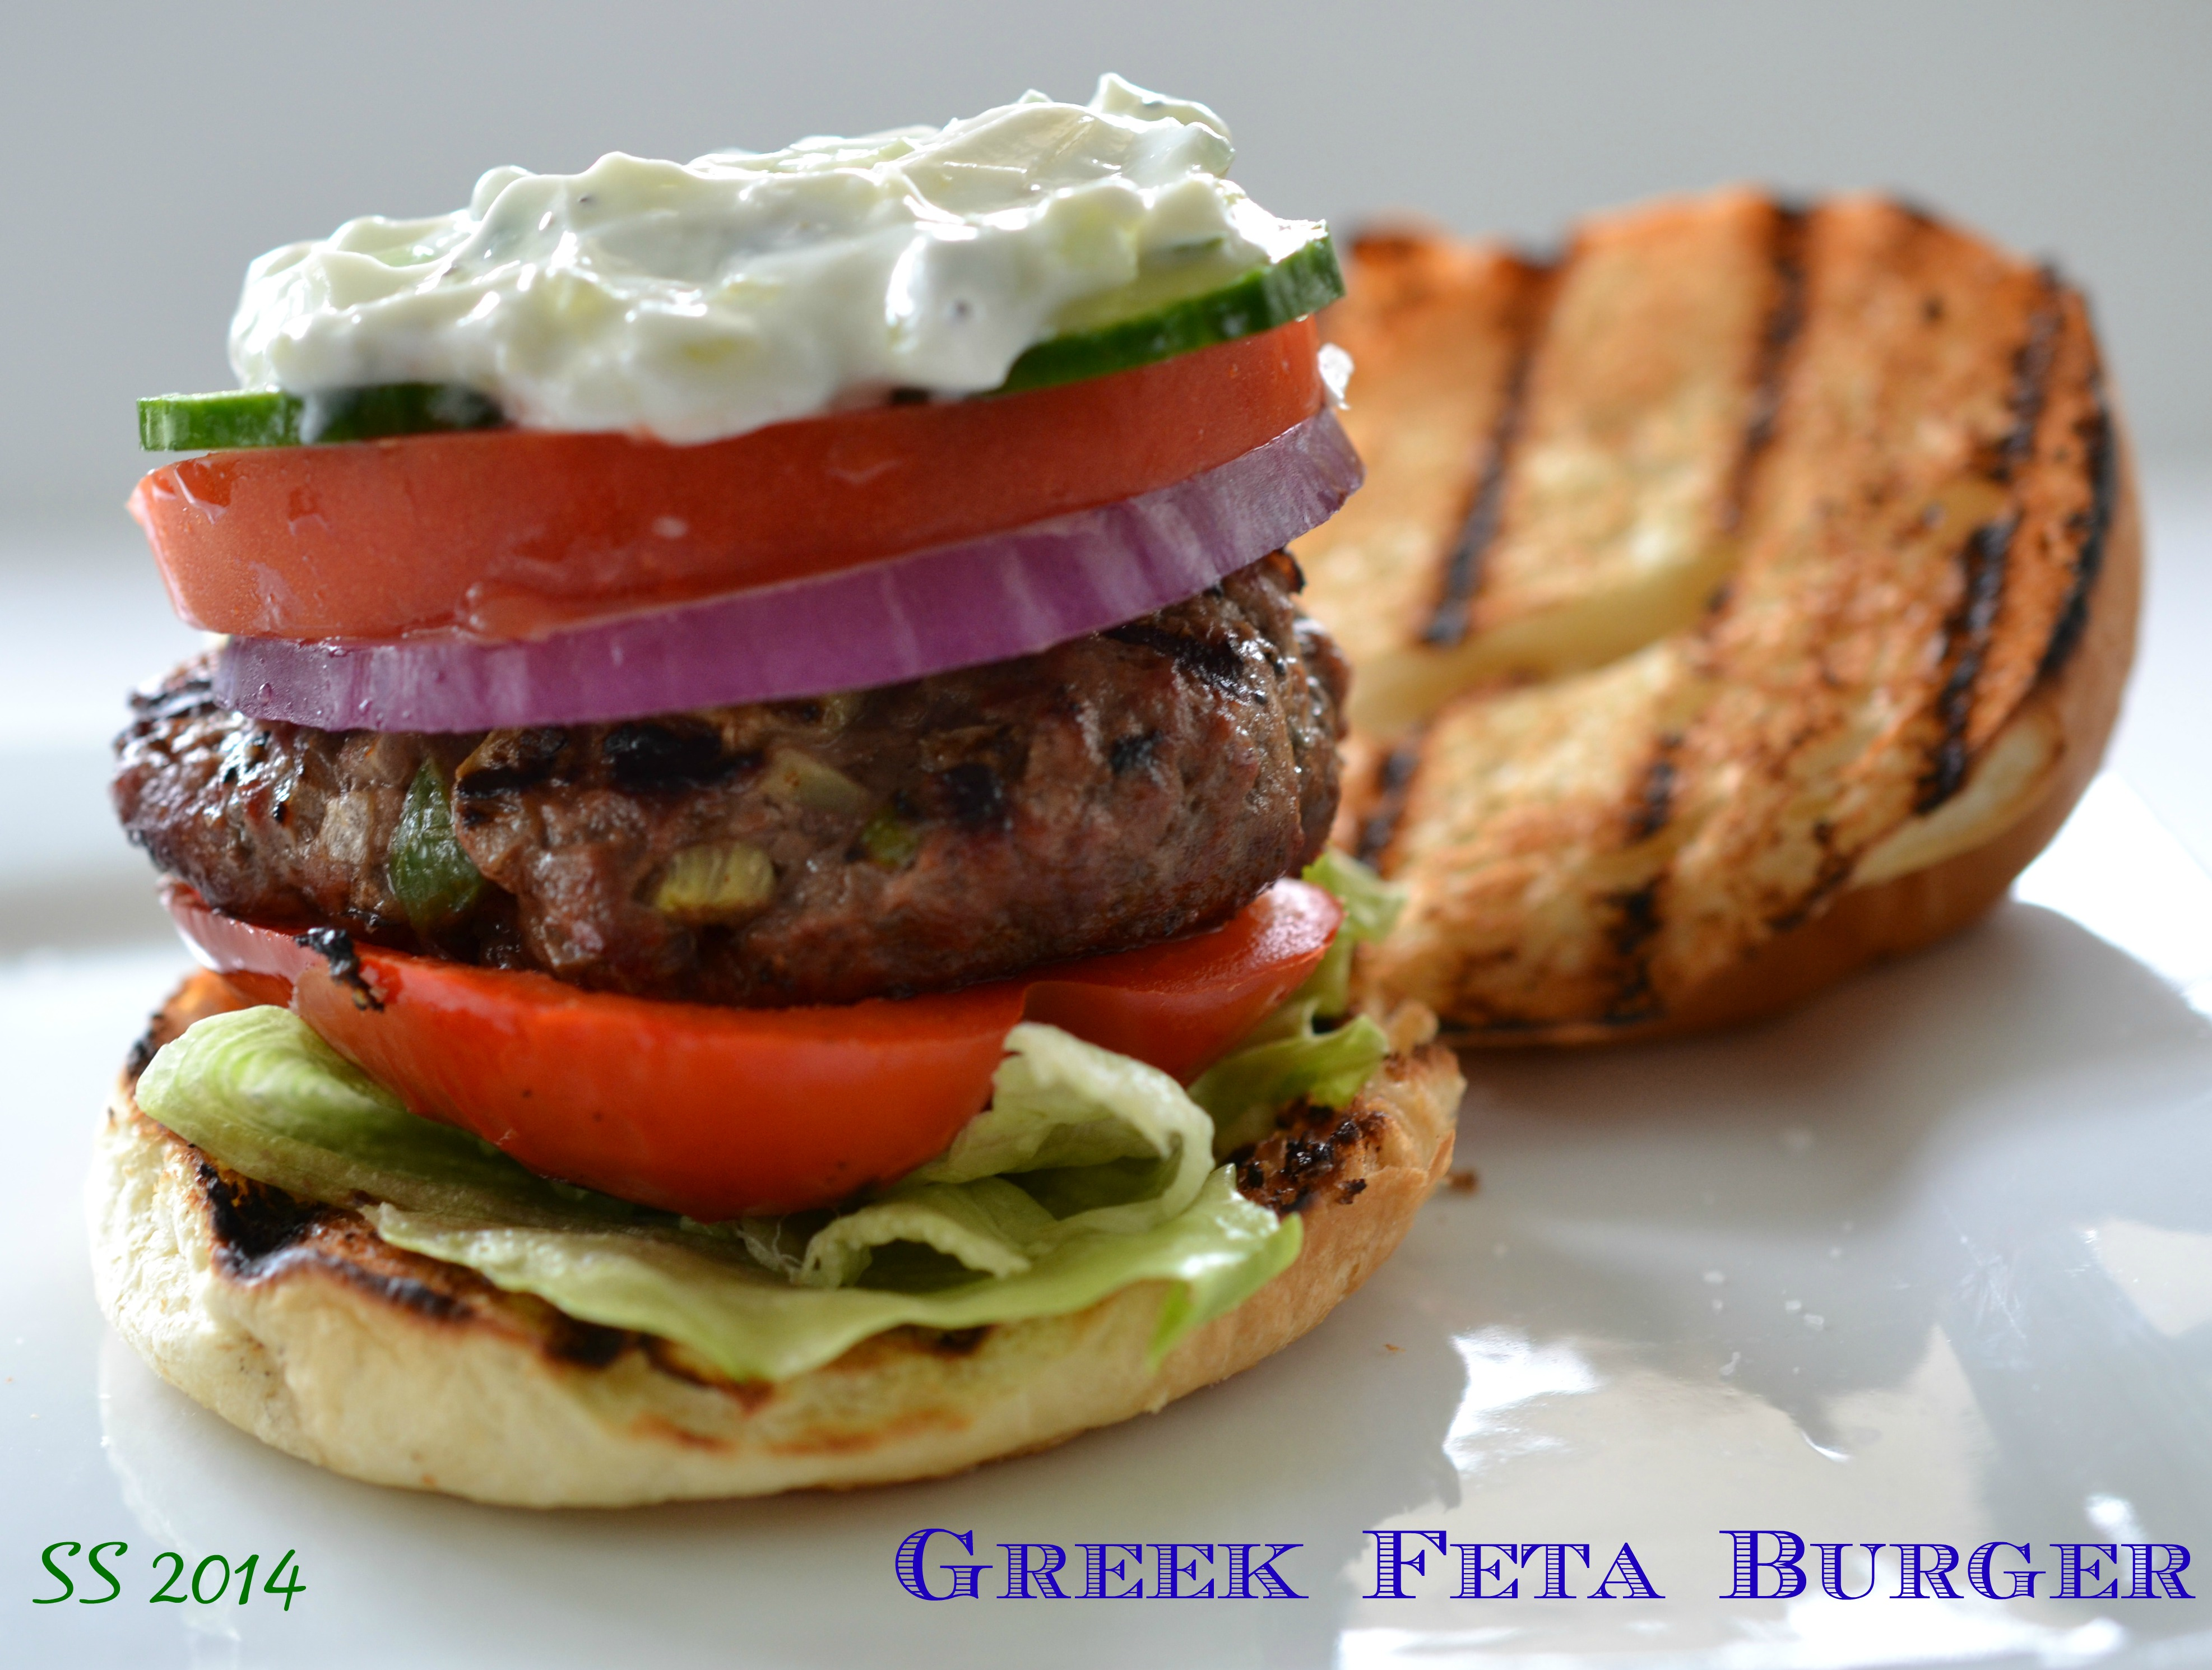 Greek Feta Burger Shredded Sprout